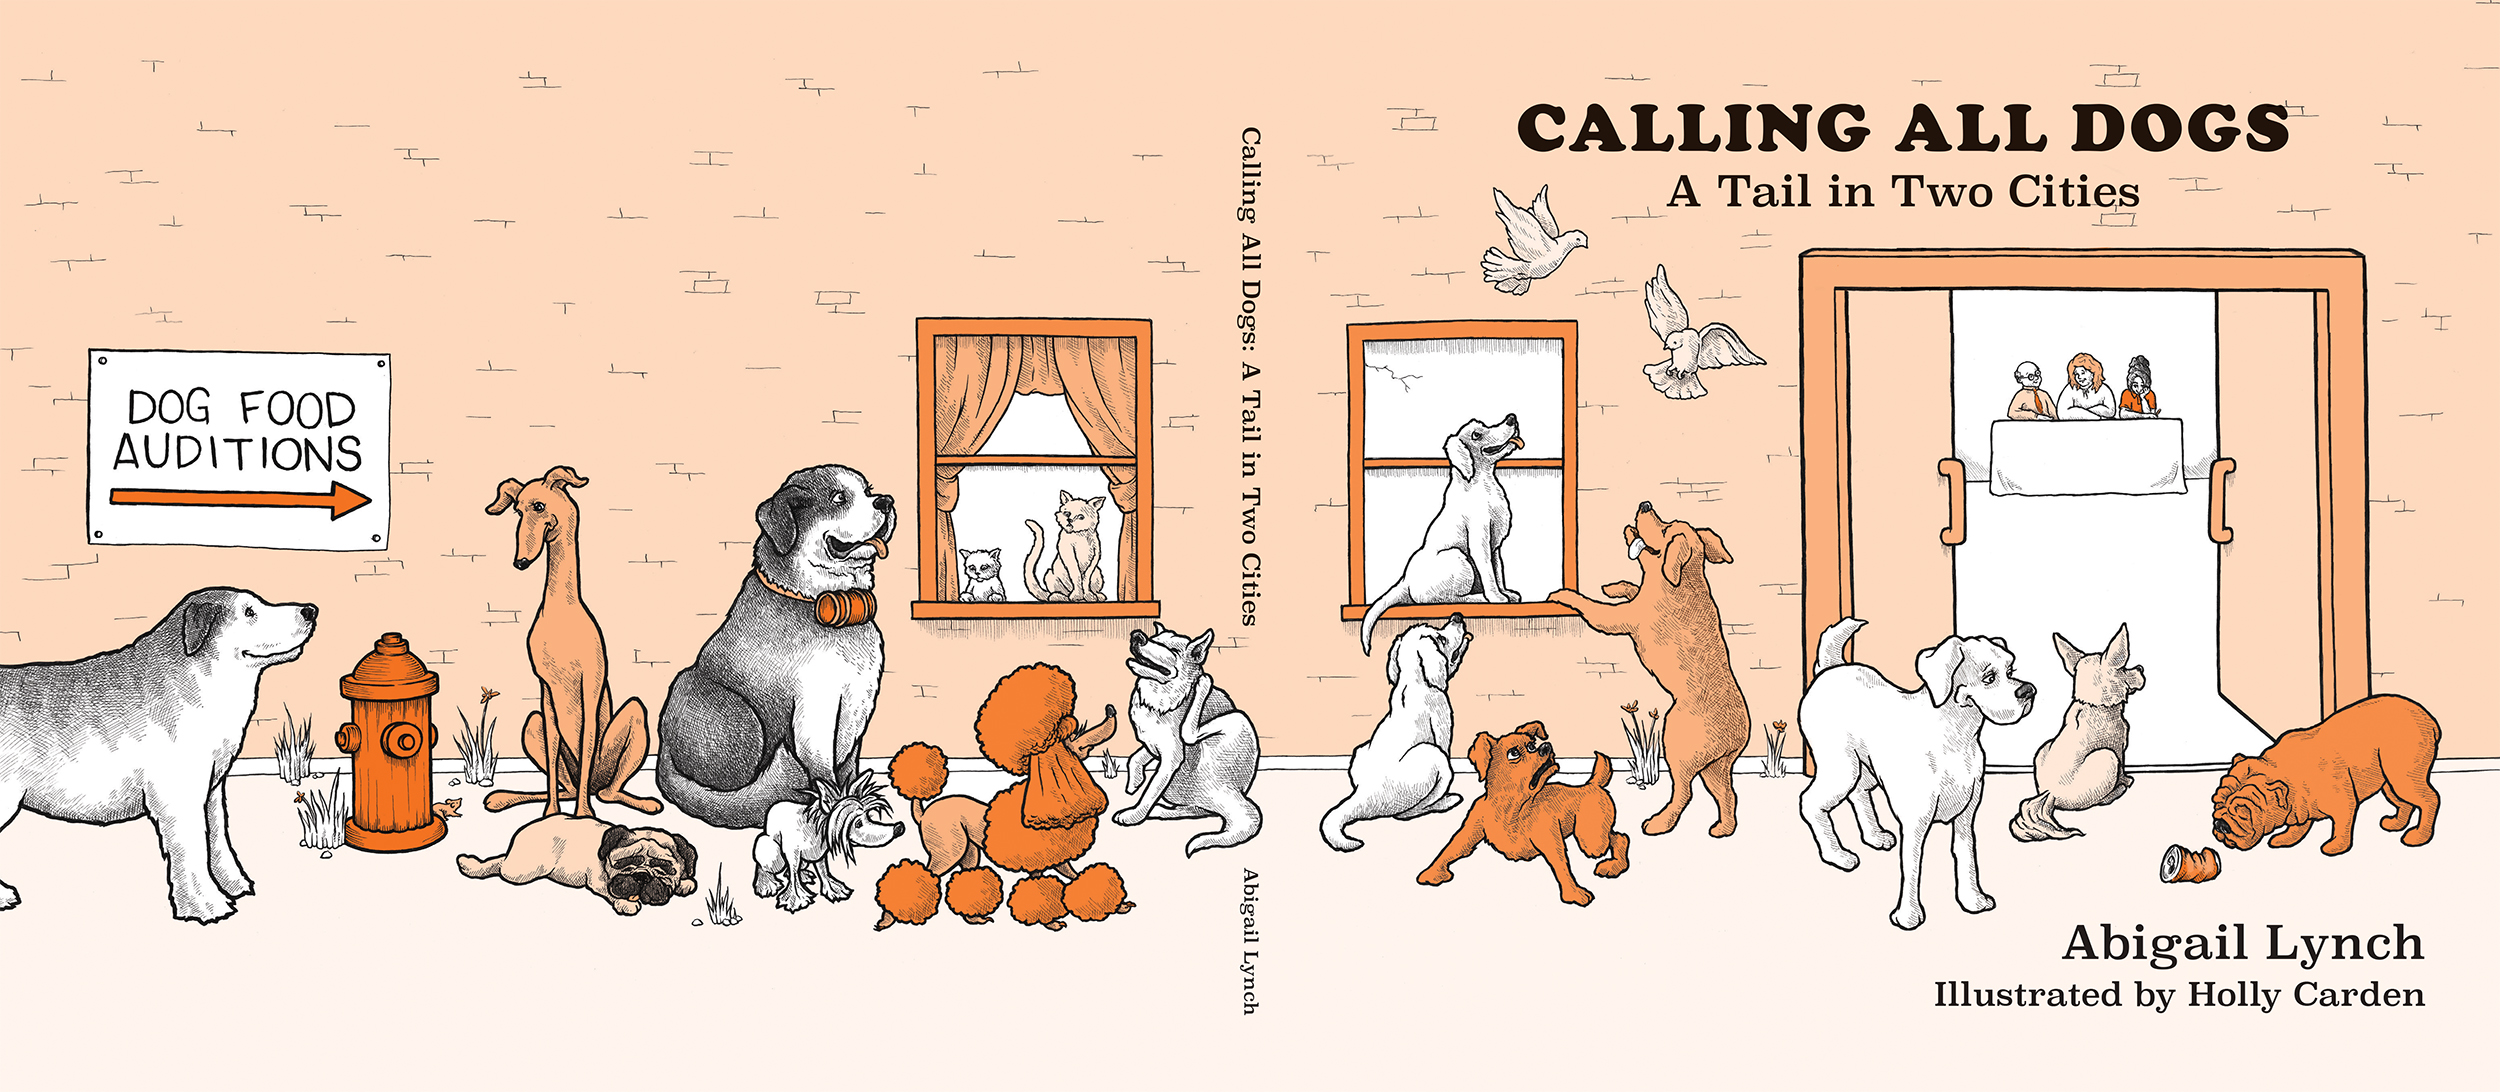 Calling All Dogs: A Tail in Two Cities by Abigail Lynch